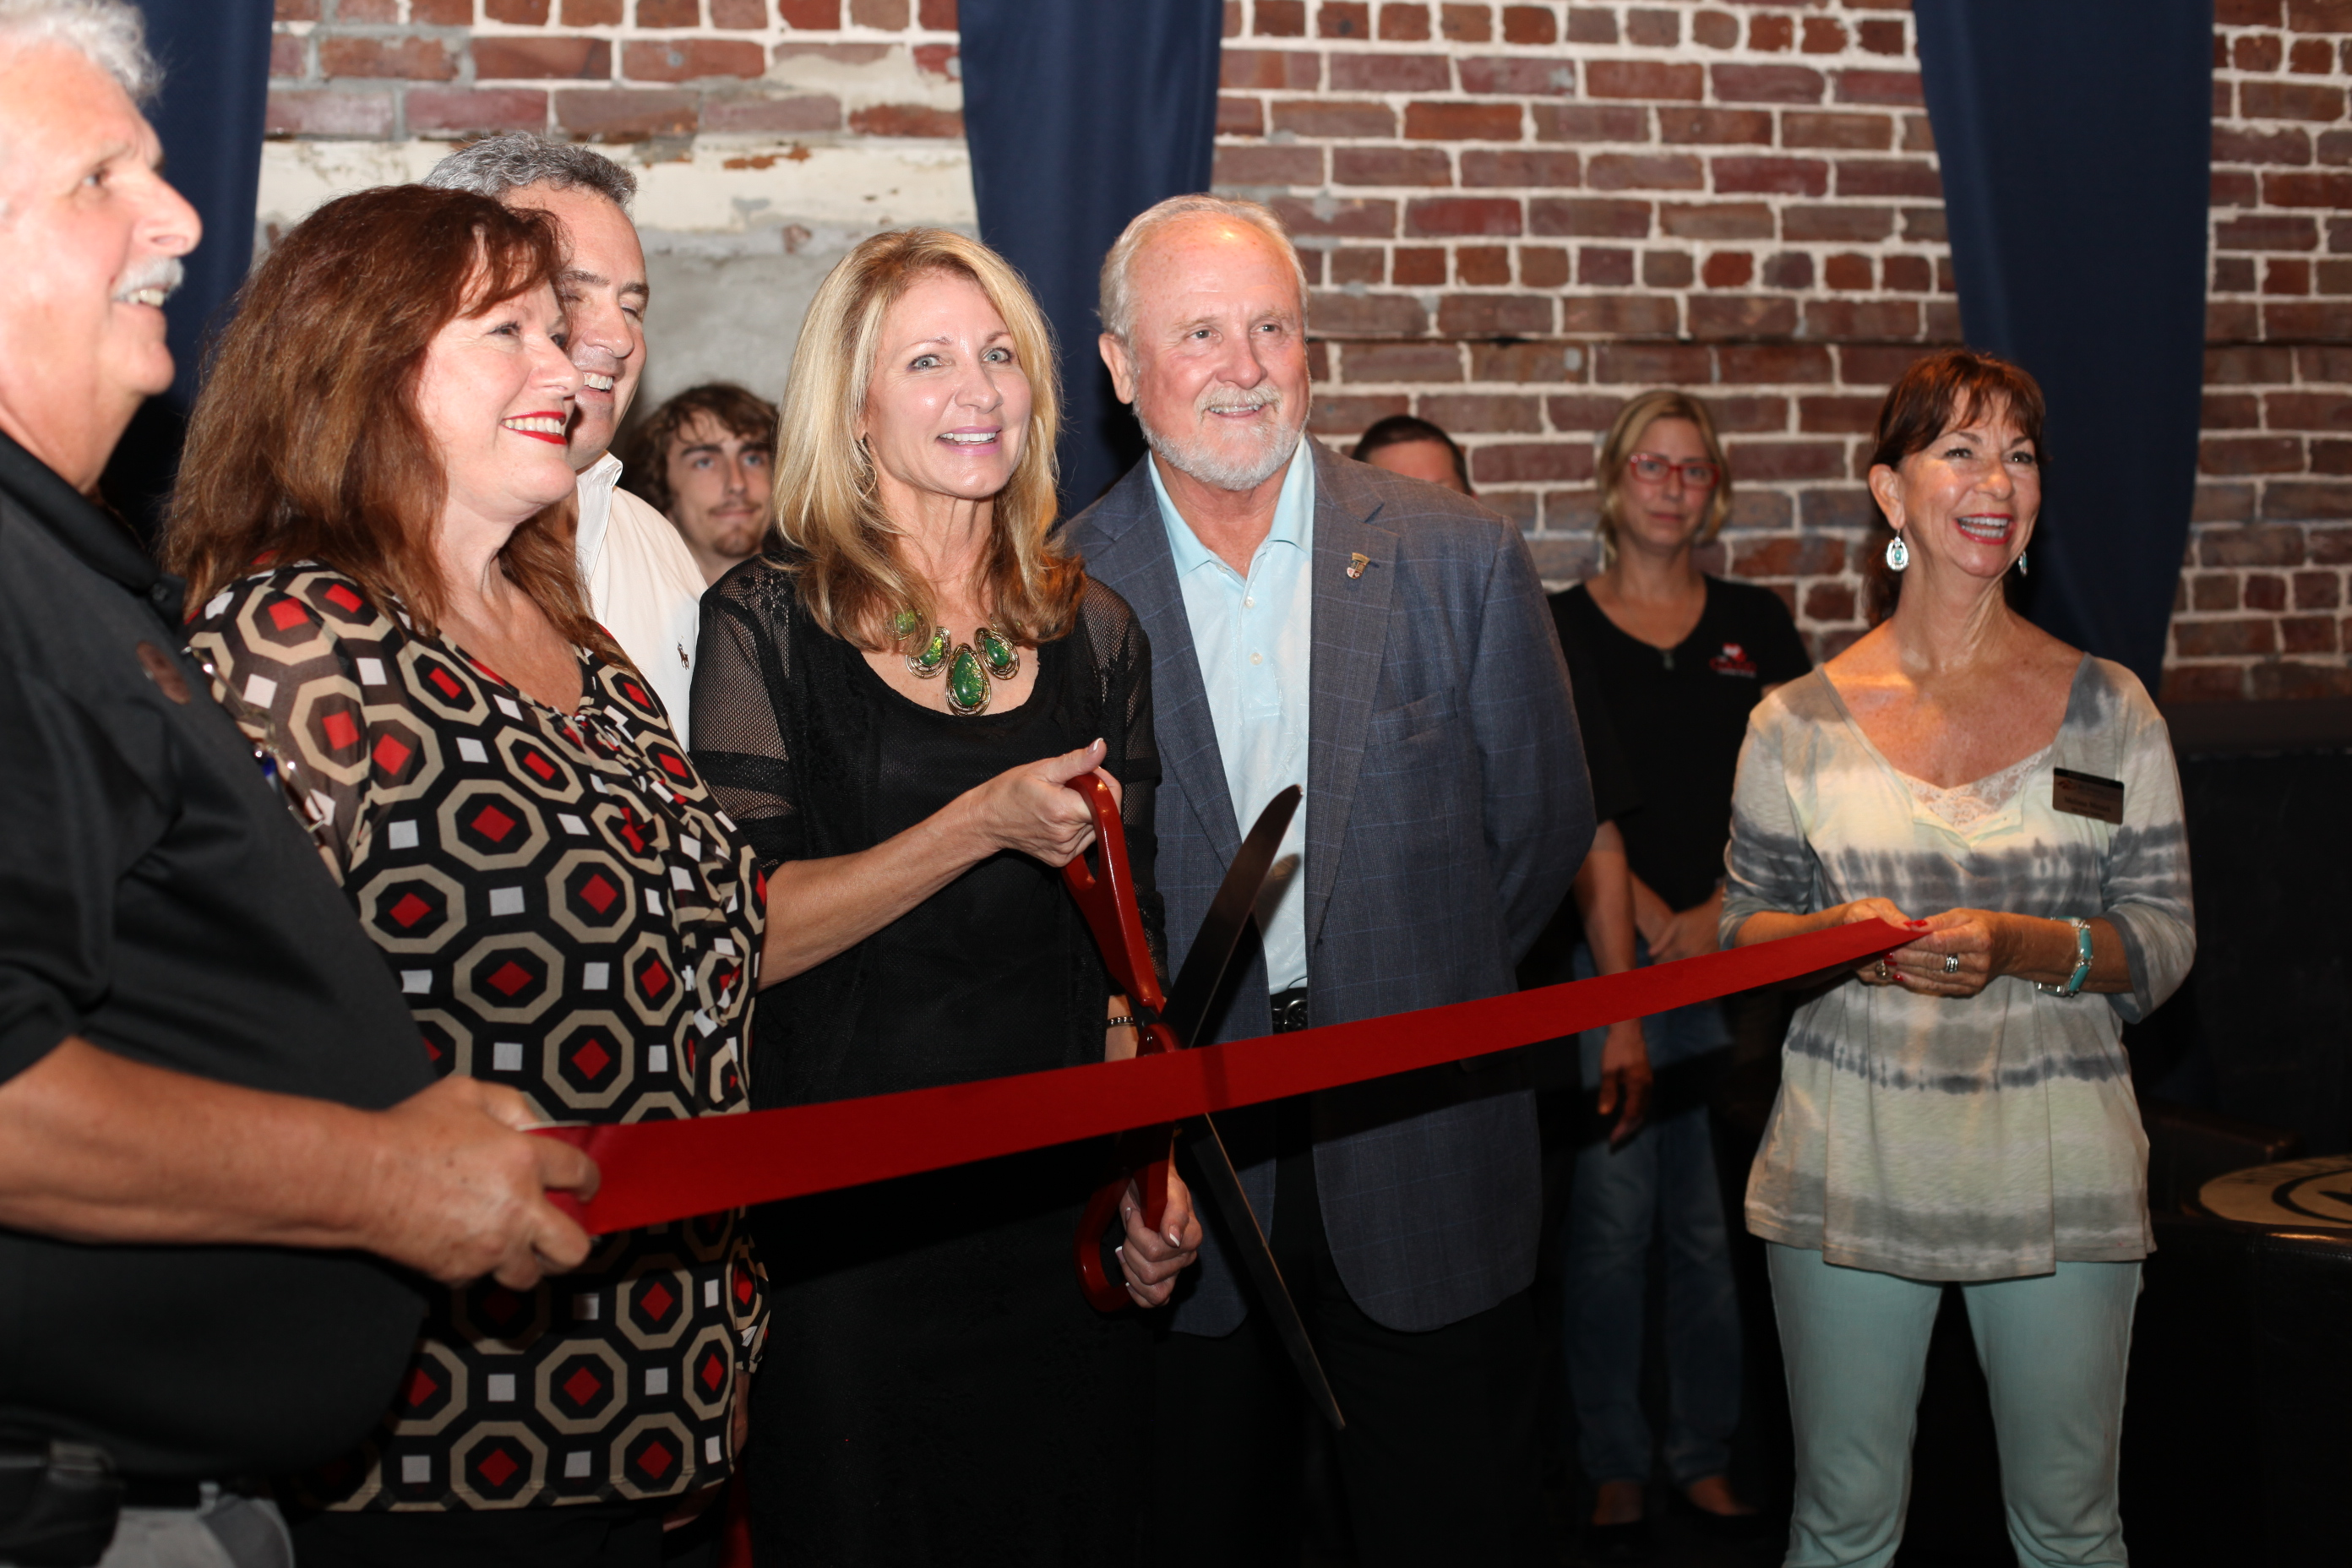 The Corazon Cinema and Cafe owner Karla Wagner, center, with St. Augustine Mayor Joe Boles officially open the renovated movie house during a ribbon cutting on Friday, Sept. 26. Photo by Renee Unsworth